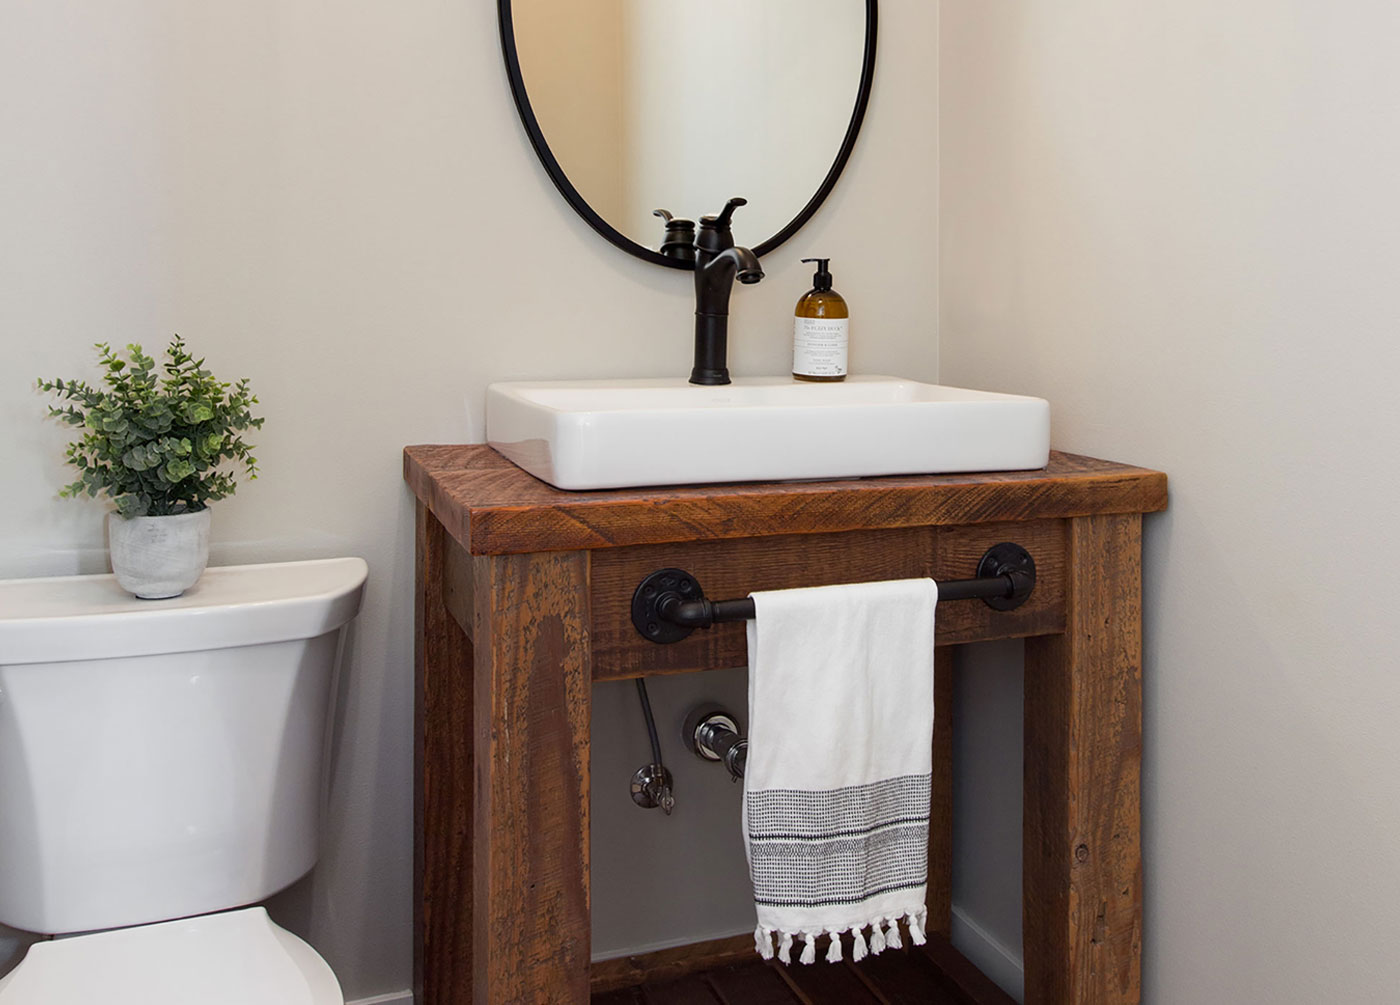 Simply Styled Powder Room Not Missing a Detail